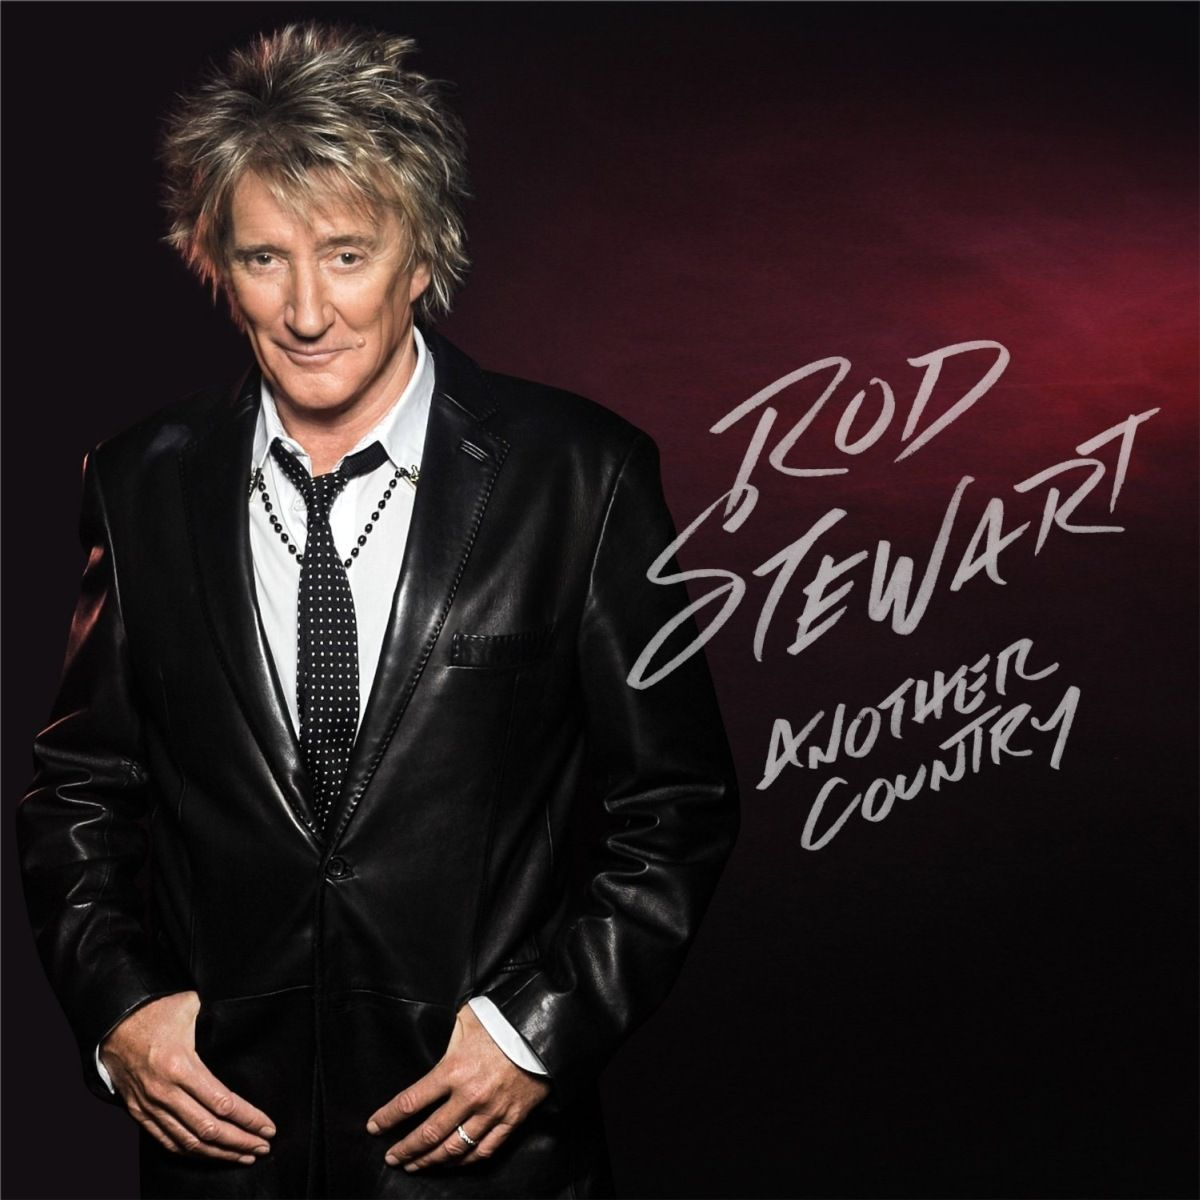 STEWART ROD – Another Country